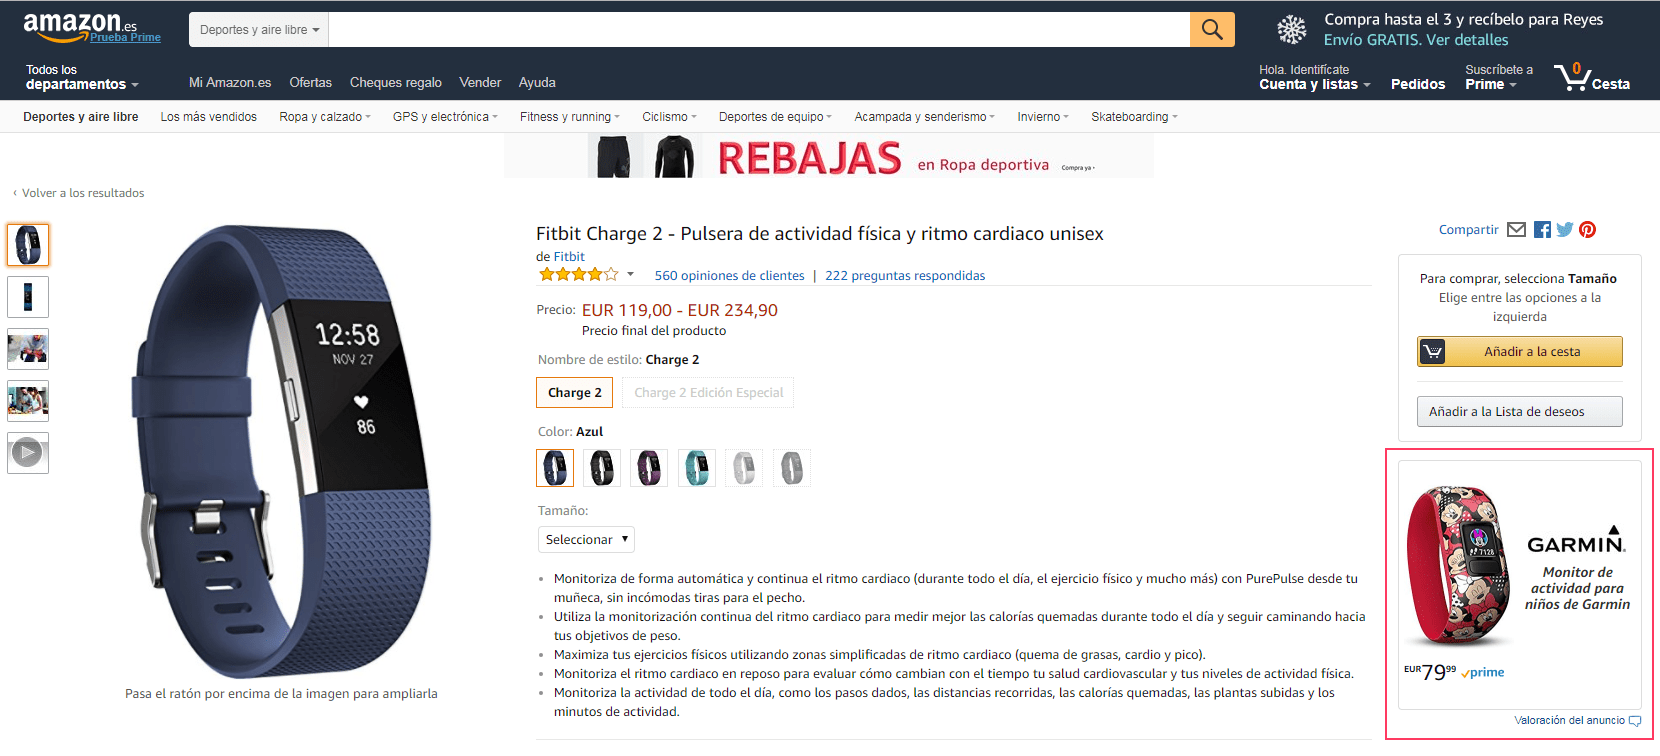 Anuncios Display de Amazon